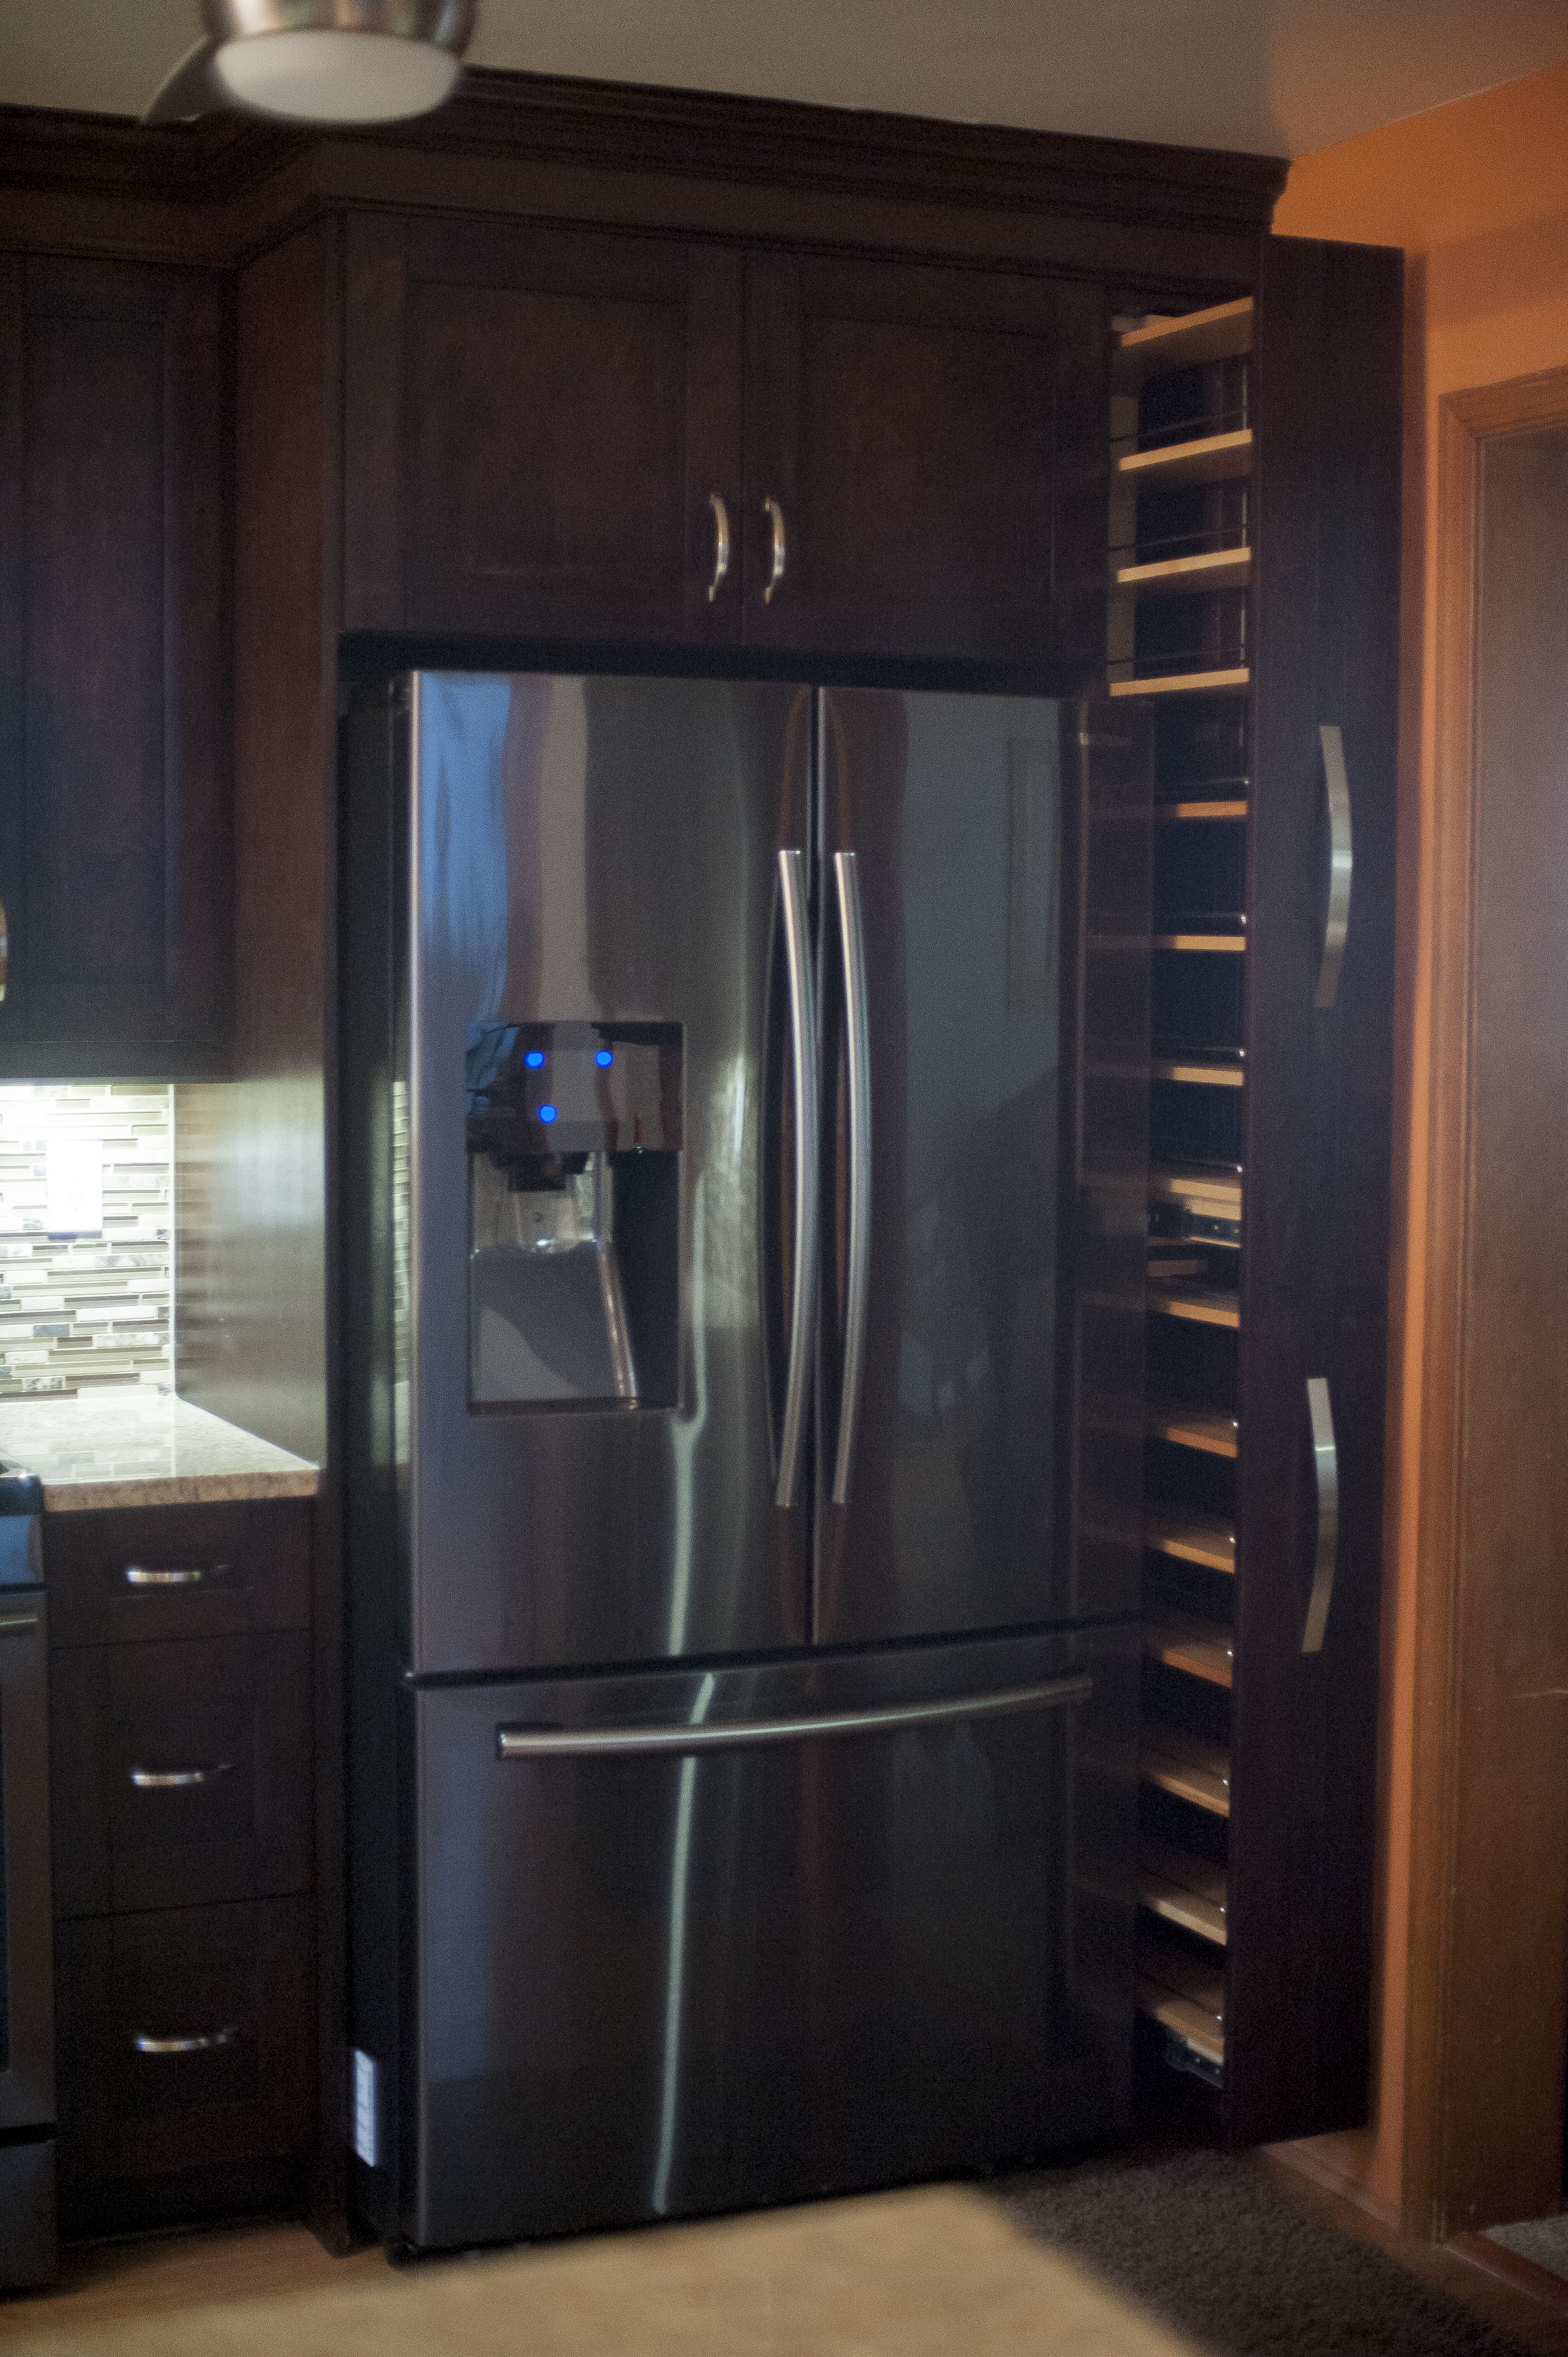 Fridge Pull-Out